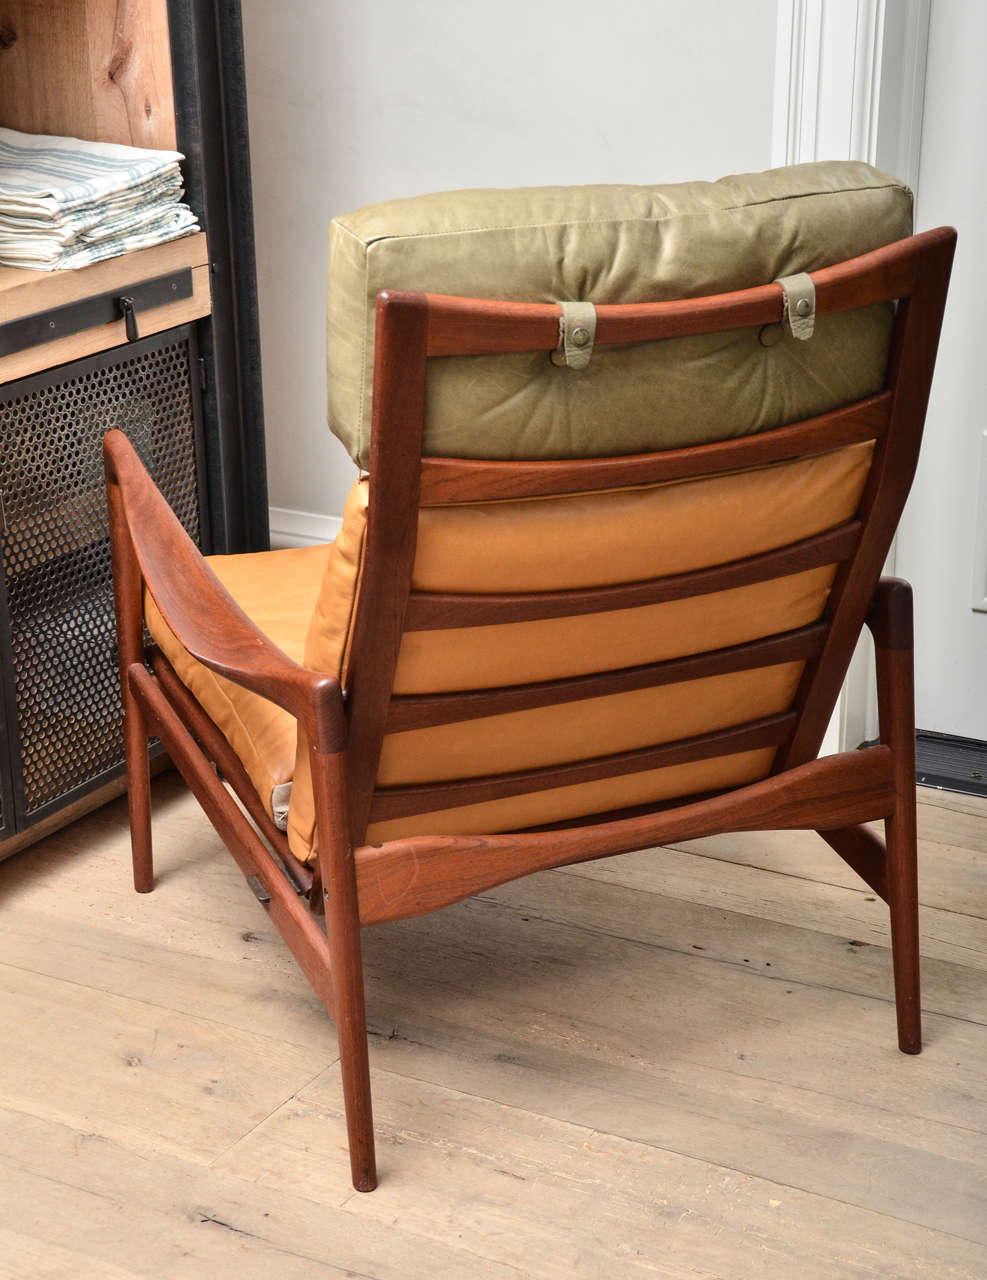 Mid-20th Century Midcentury Scandinavian Lounge Chair For Sale